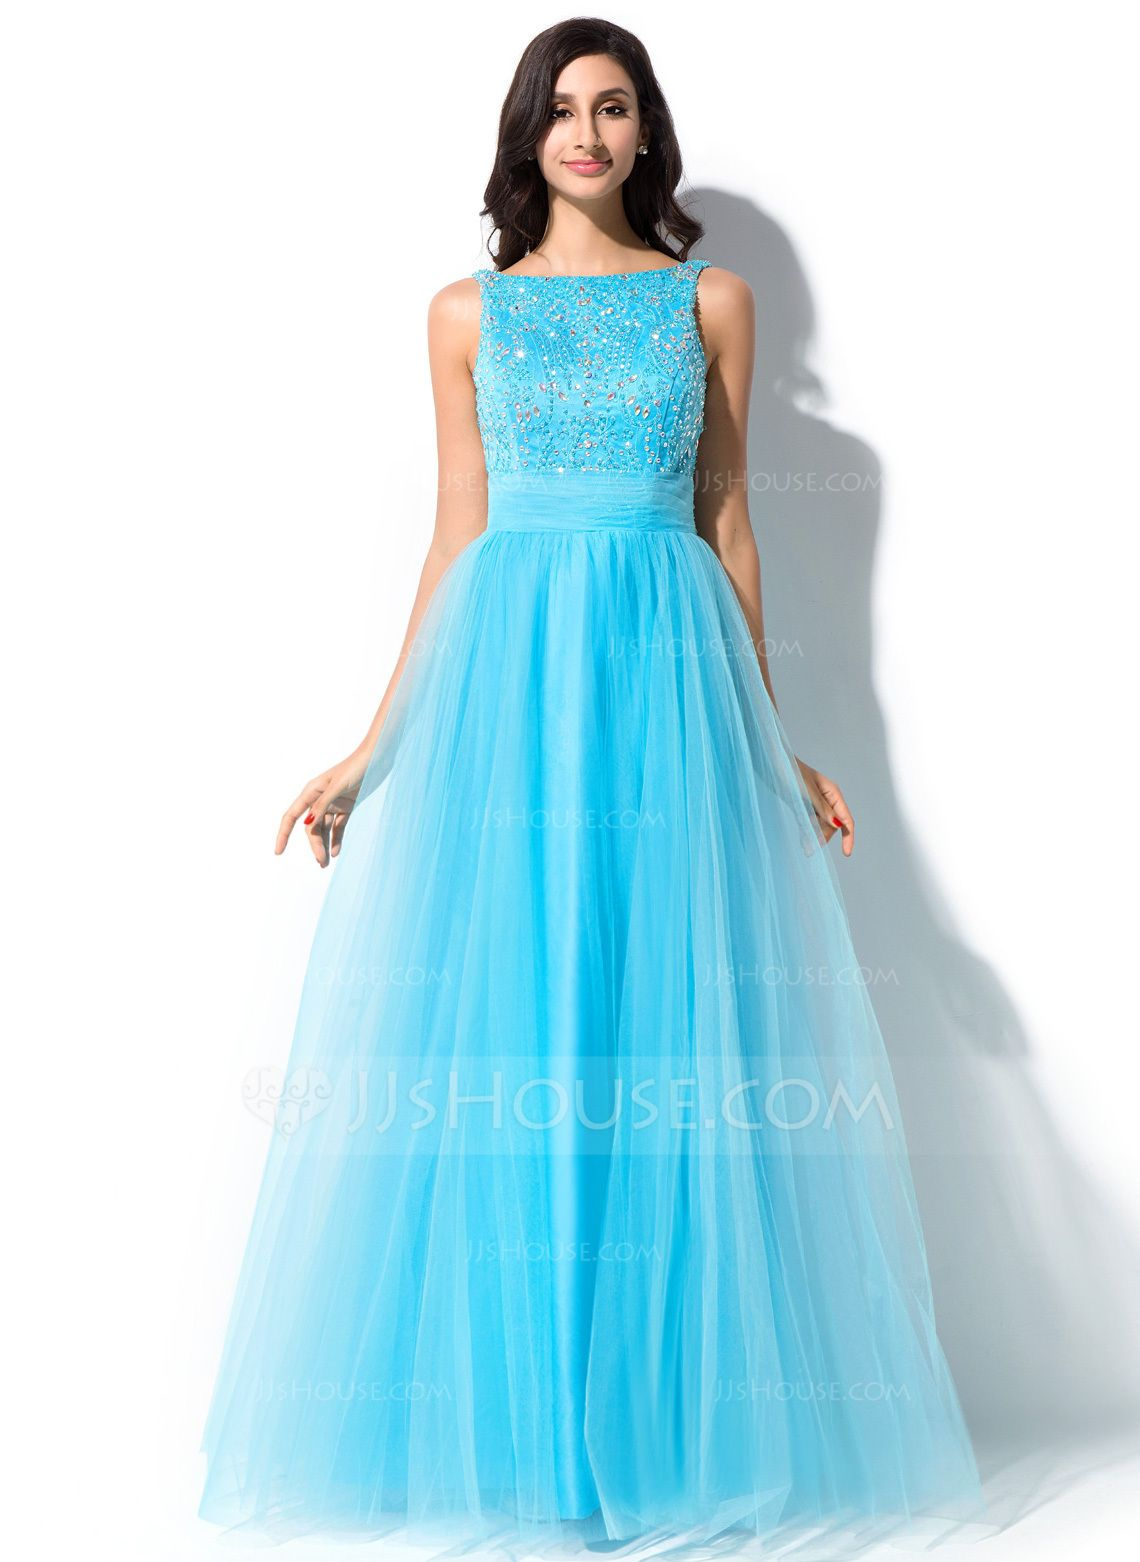 A lineprincess scoop neck floor length tulle prom dress with lace a lineprincess scoop neck floor length tulle charmeuse prom dress with lace ombrellifo Images